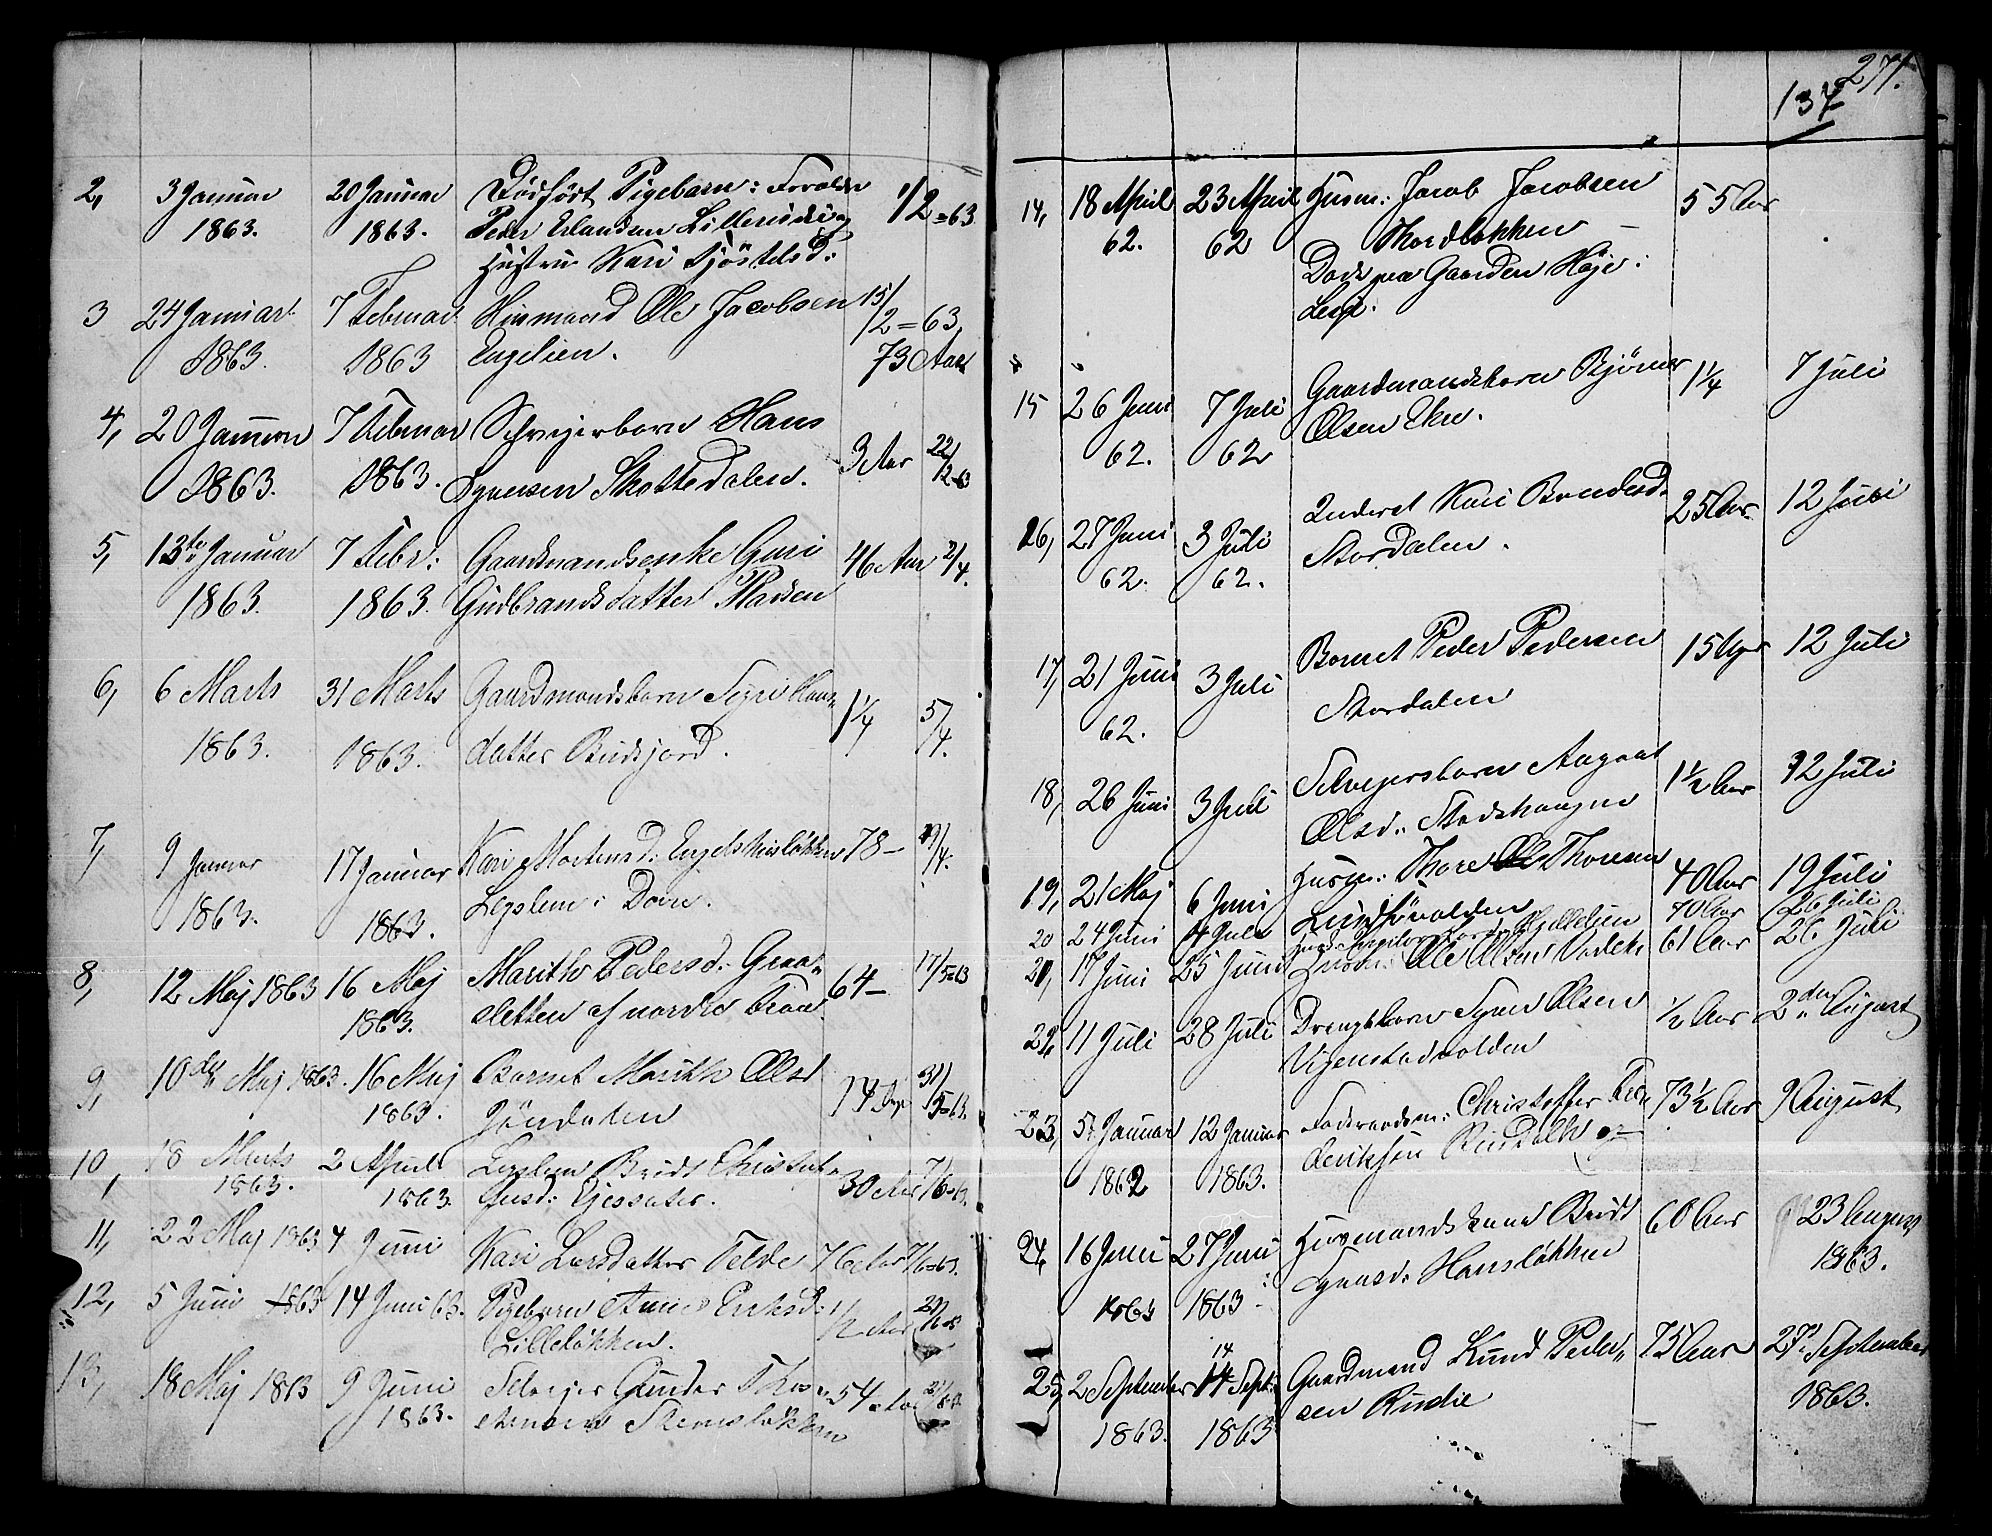 SAH, Dovre prestekontor, Parish register (copy) no. 1, 1862-1880, p. 271